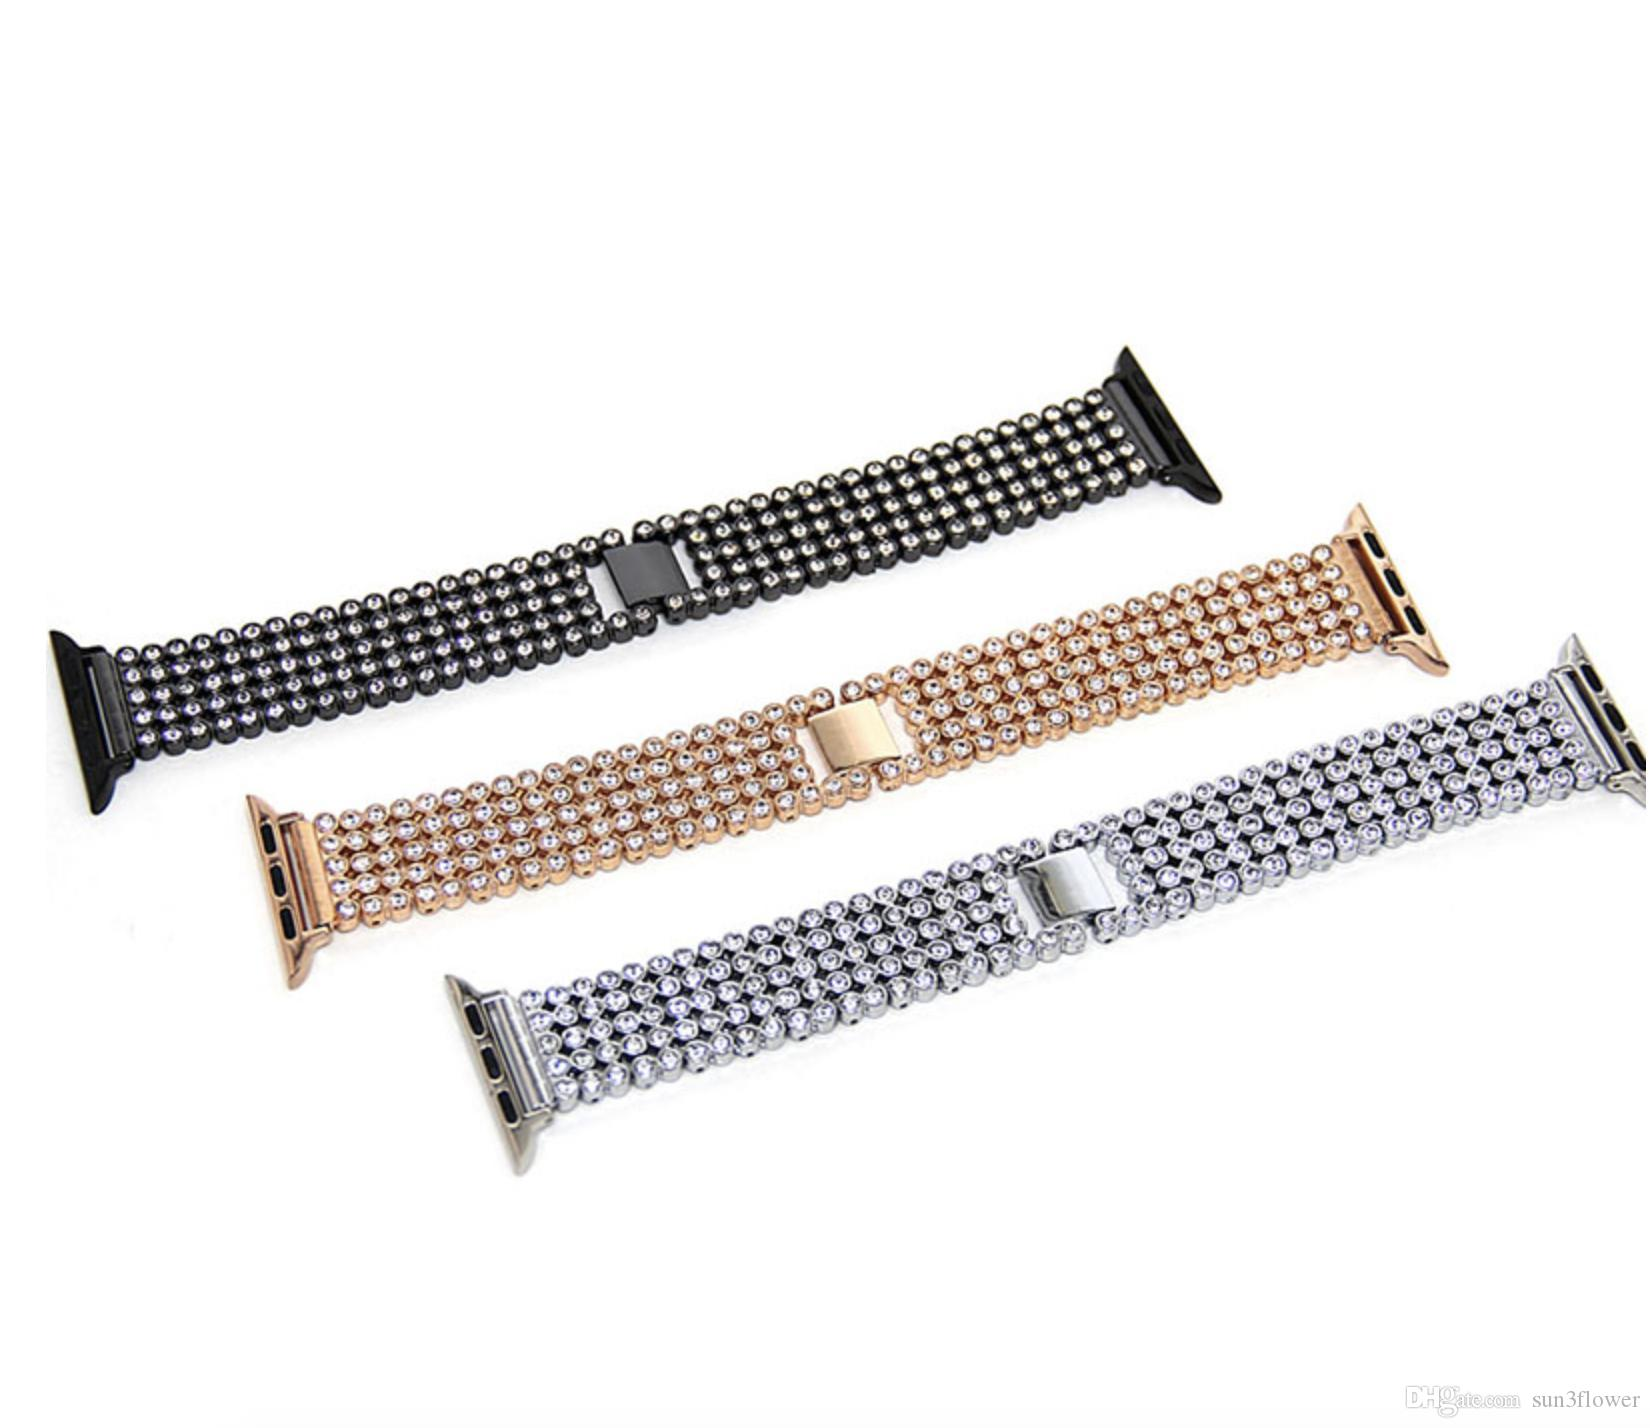 Silver Black Rose Gold Stainless Steel Bracelet Buckle Strap for Apple Watch Band Series 1 Series 2 Series 3 38mm 42mm